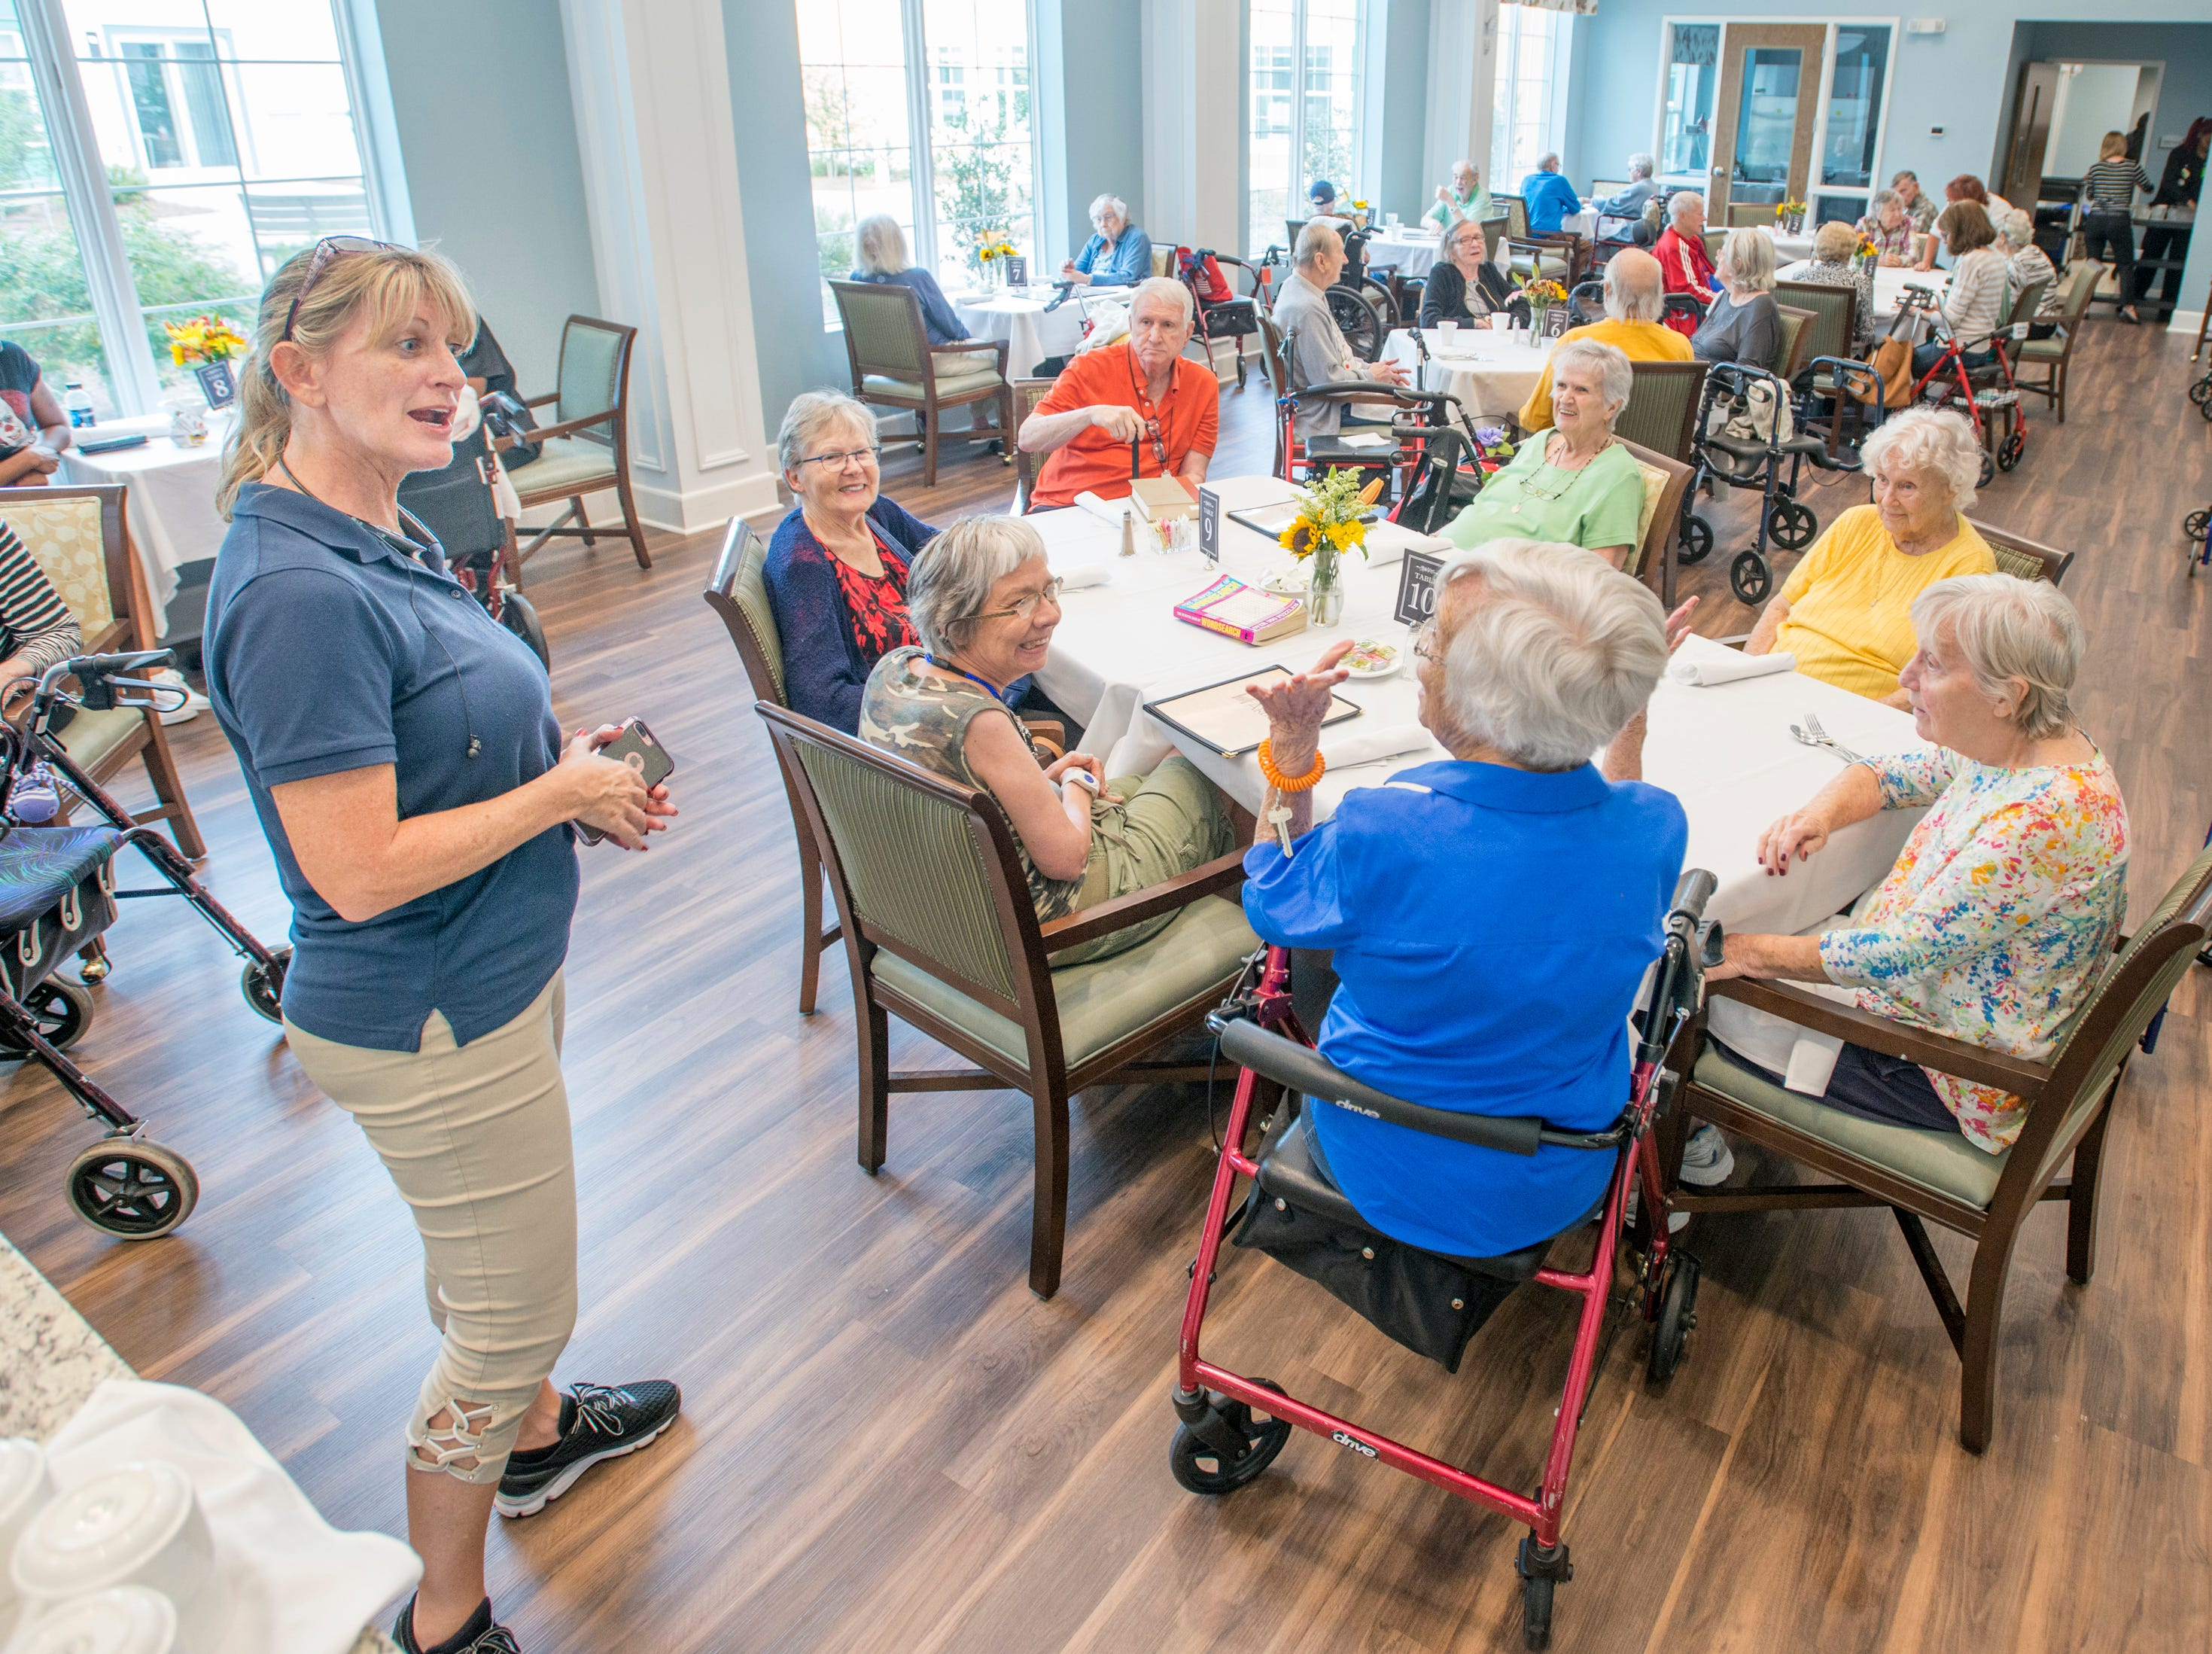 Shelley Kaiser, SRI Management senior vice president of operations, left, chats with Superior Residences of Panama City Beach residents at the Arbors of Gulf Breeze senior living community in Gulf Breeze on Tuesday, October 9, 2018.  Residents and staff from Panama City Beach were evacuated to this sister community as Hurricane Michael approaches the Florida panhandle.